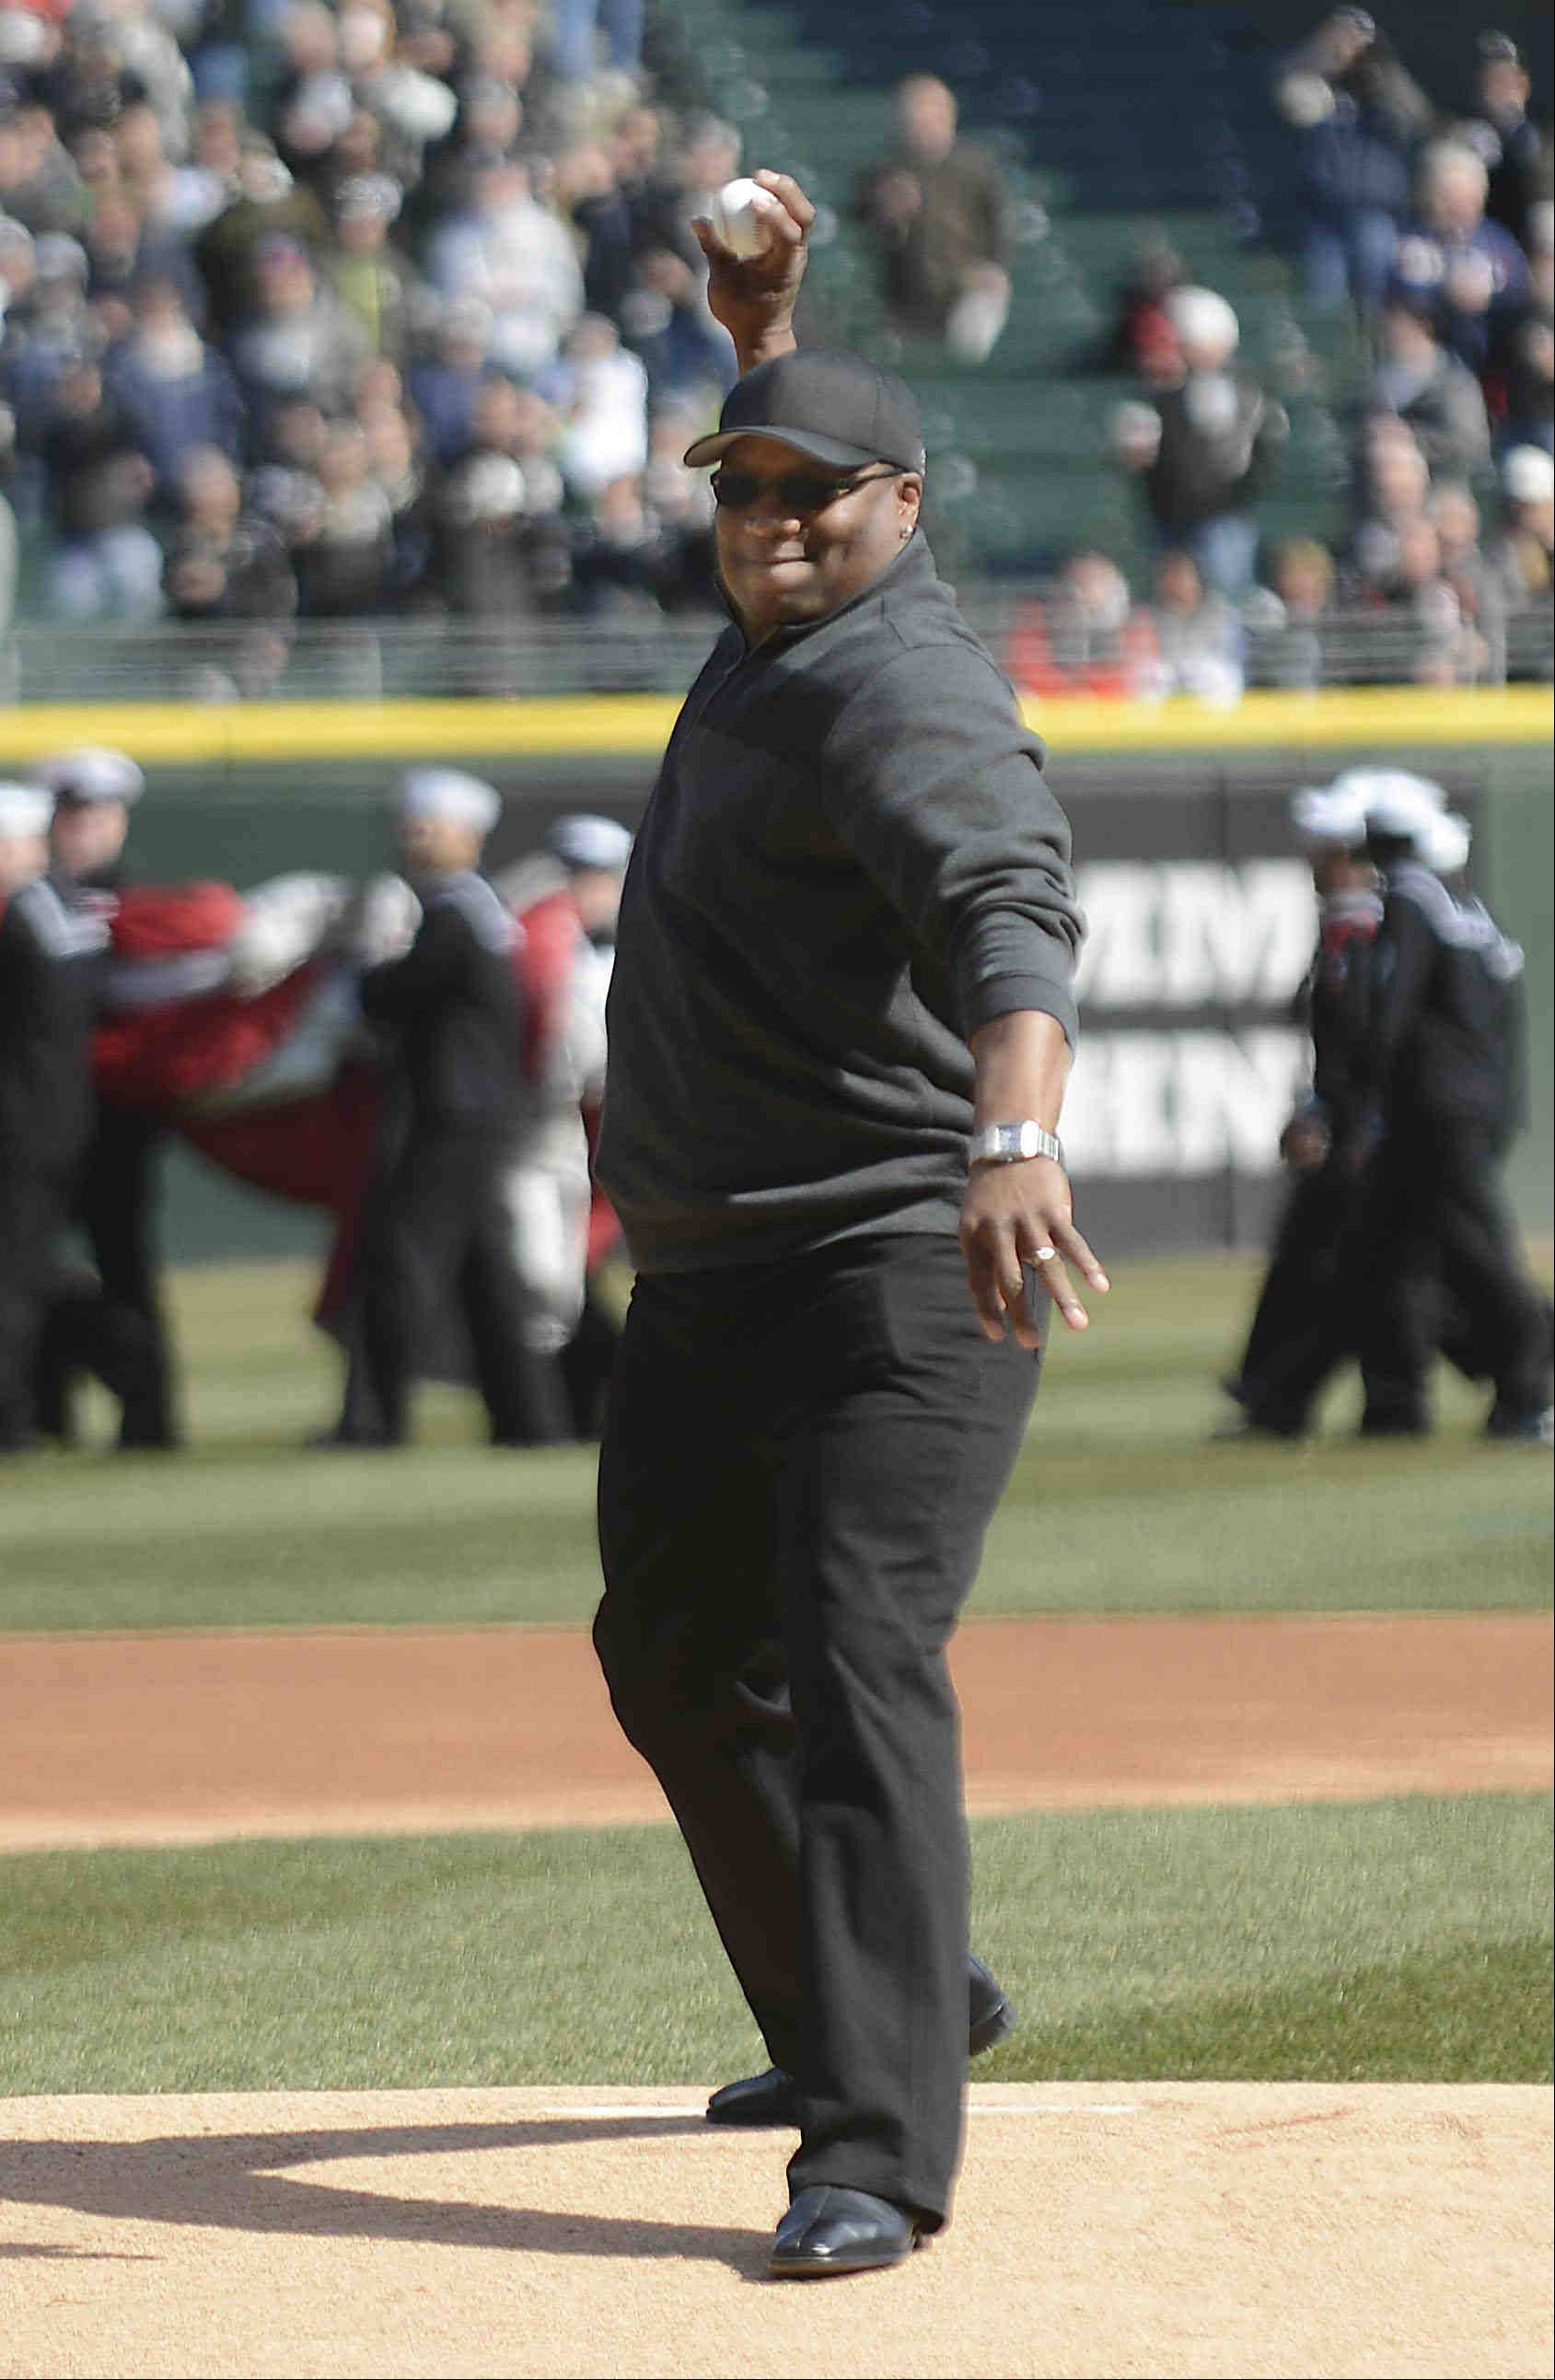 Bo Jackson, who played for the White Sox and Royals, throws out the first ceremonial pitch in the 2013 season opener at U.S. Cellular Field.